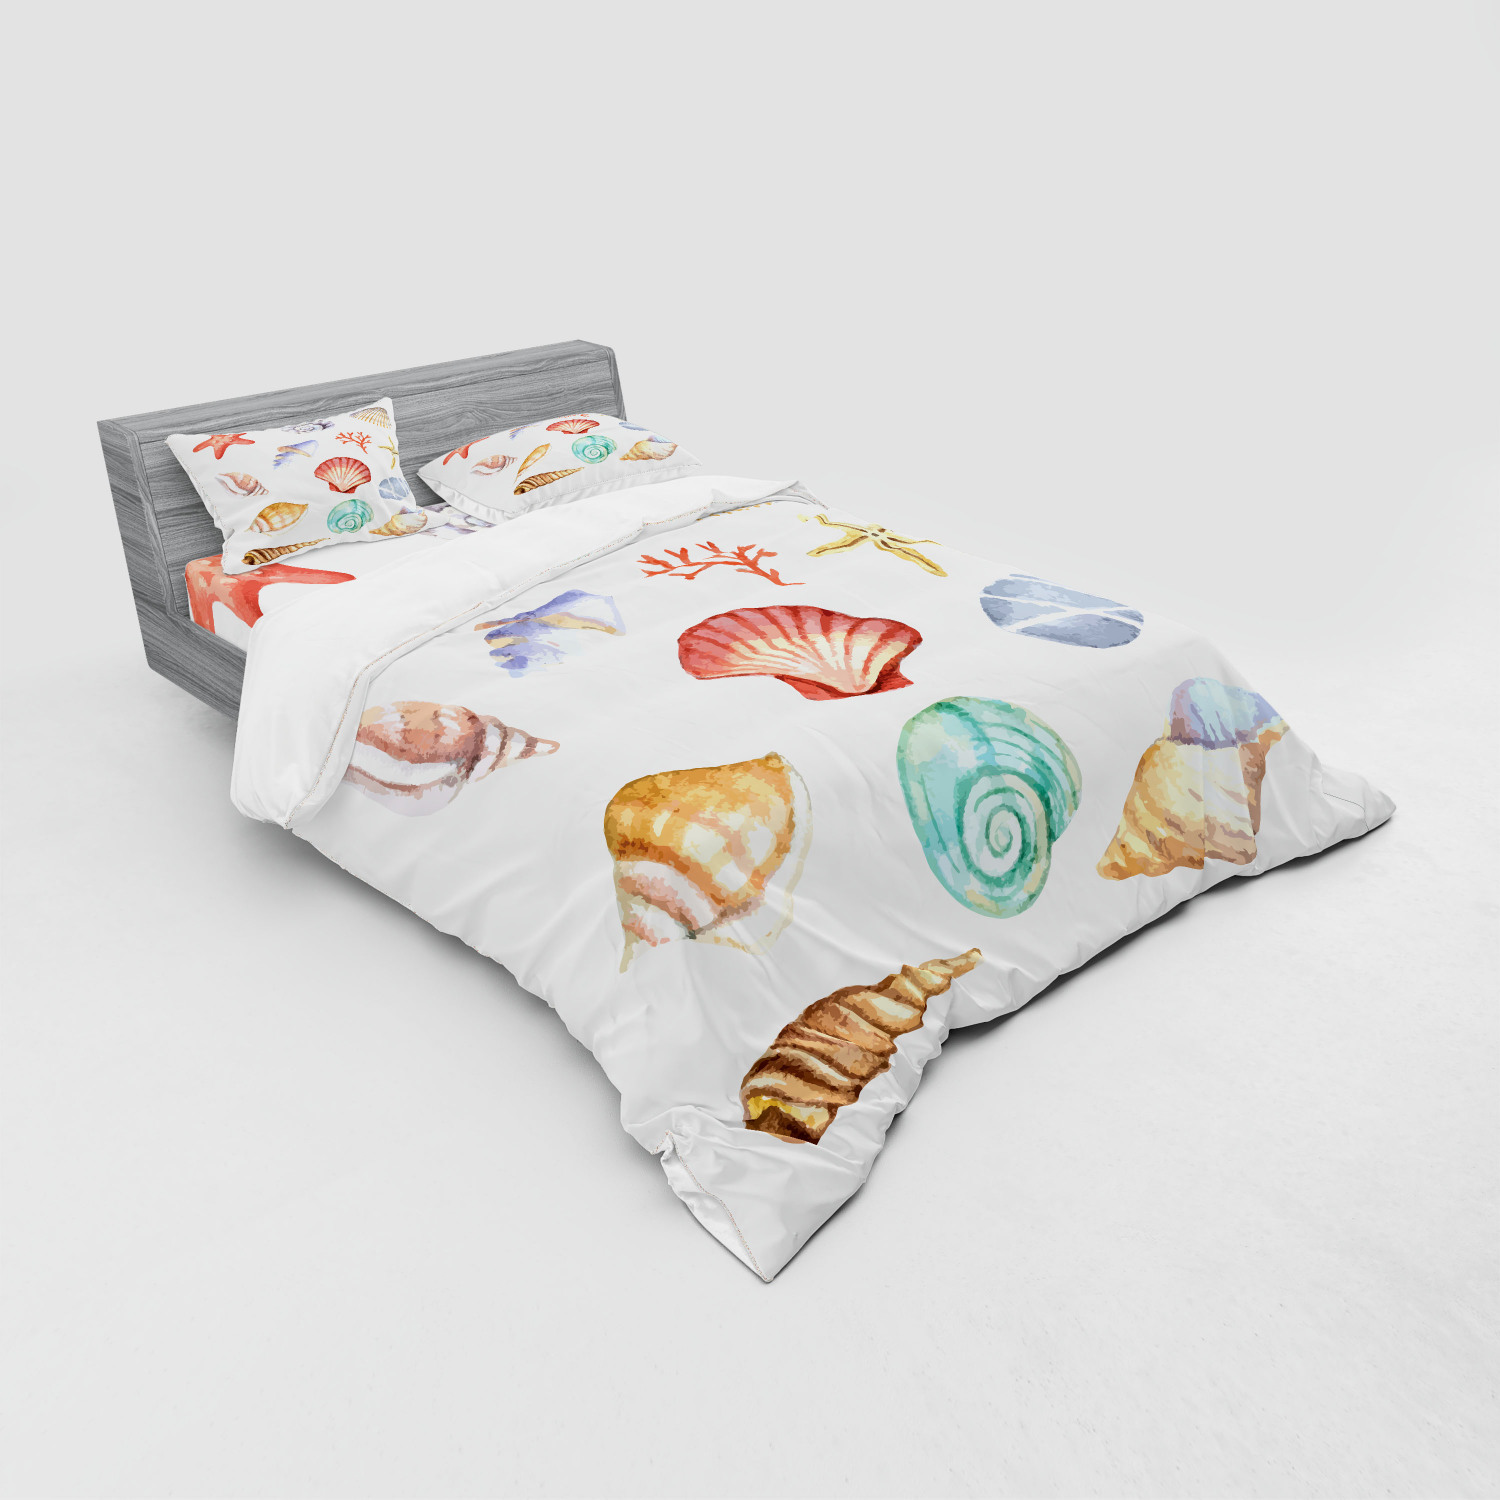 thumbnail 183 - Ambesonne Summer Bedding Set Duvet Cover Sham Fitted Sheet in 3 Sizes